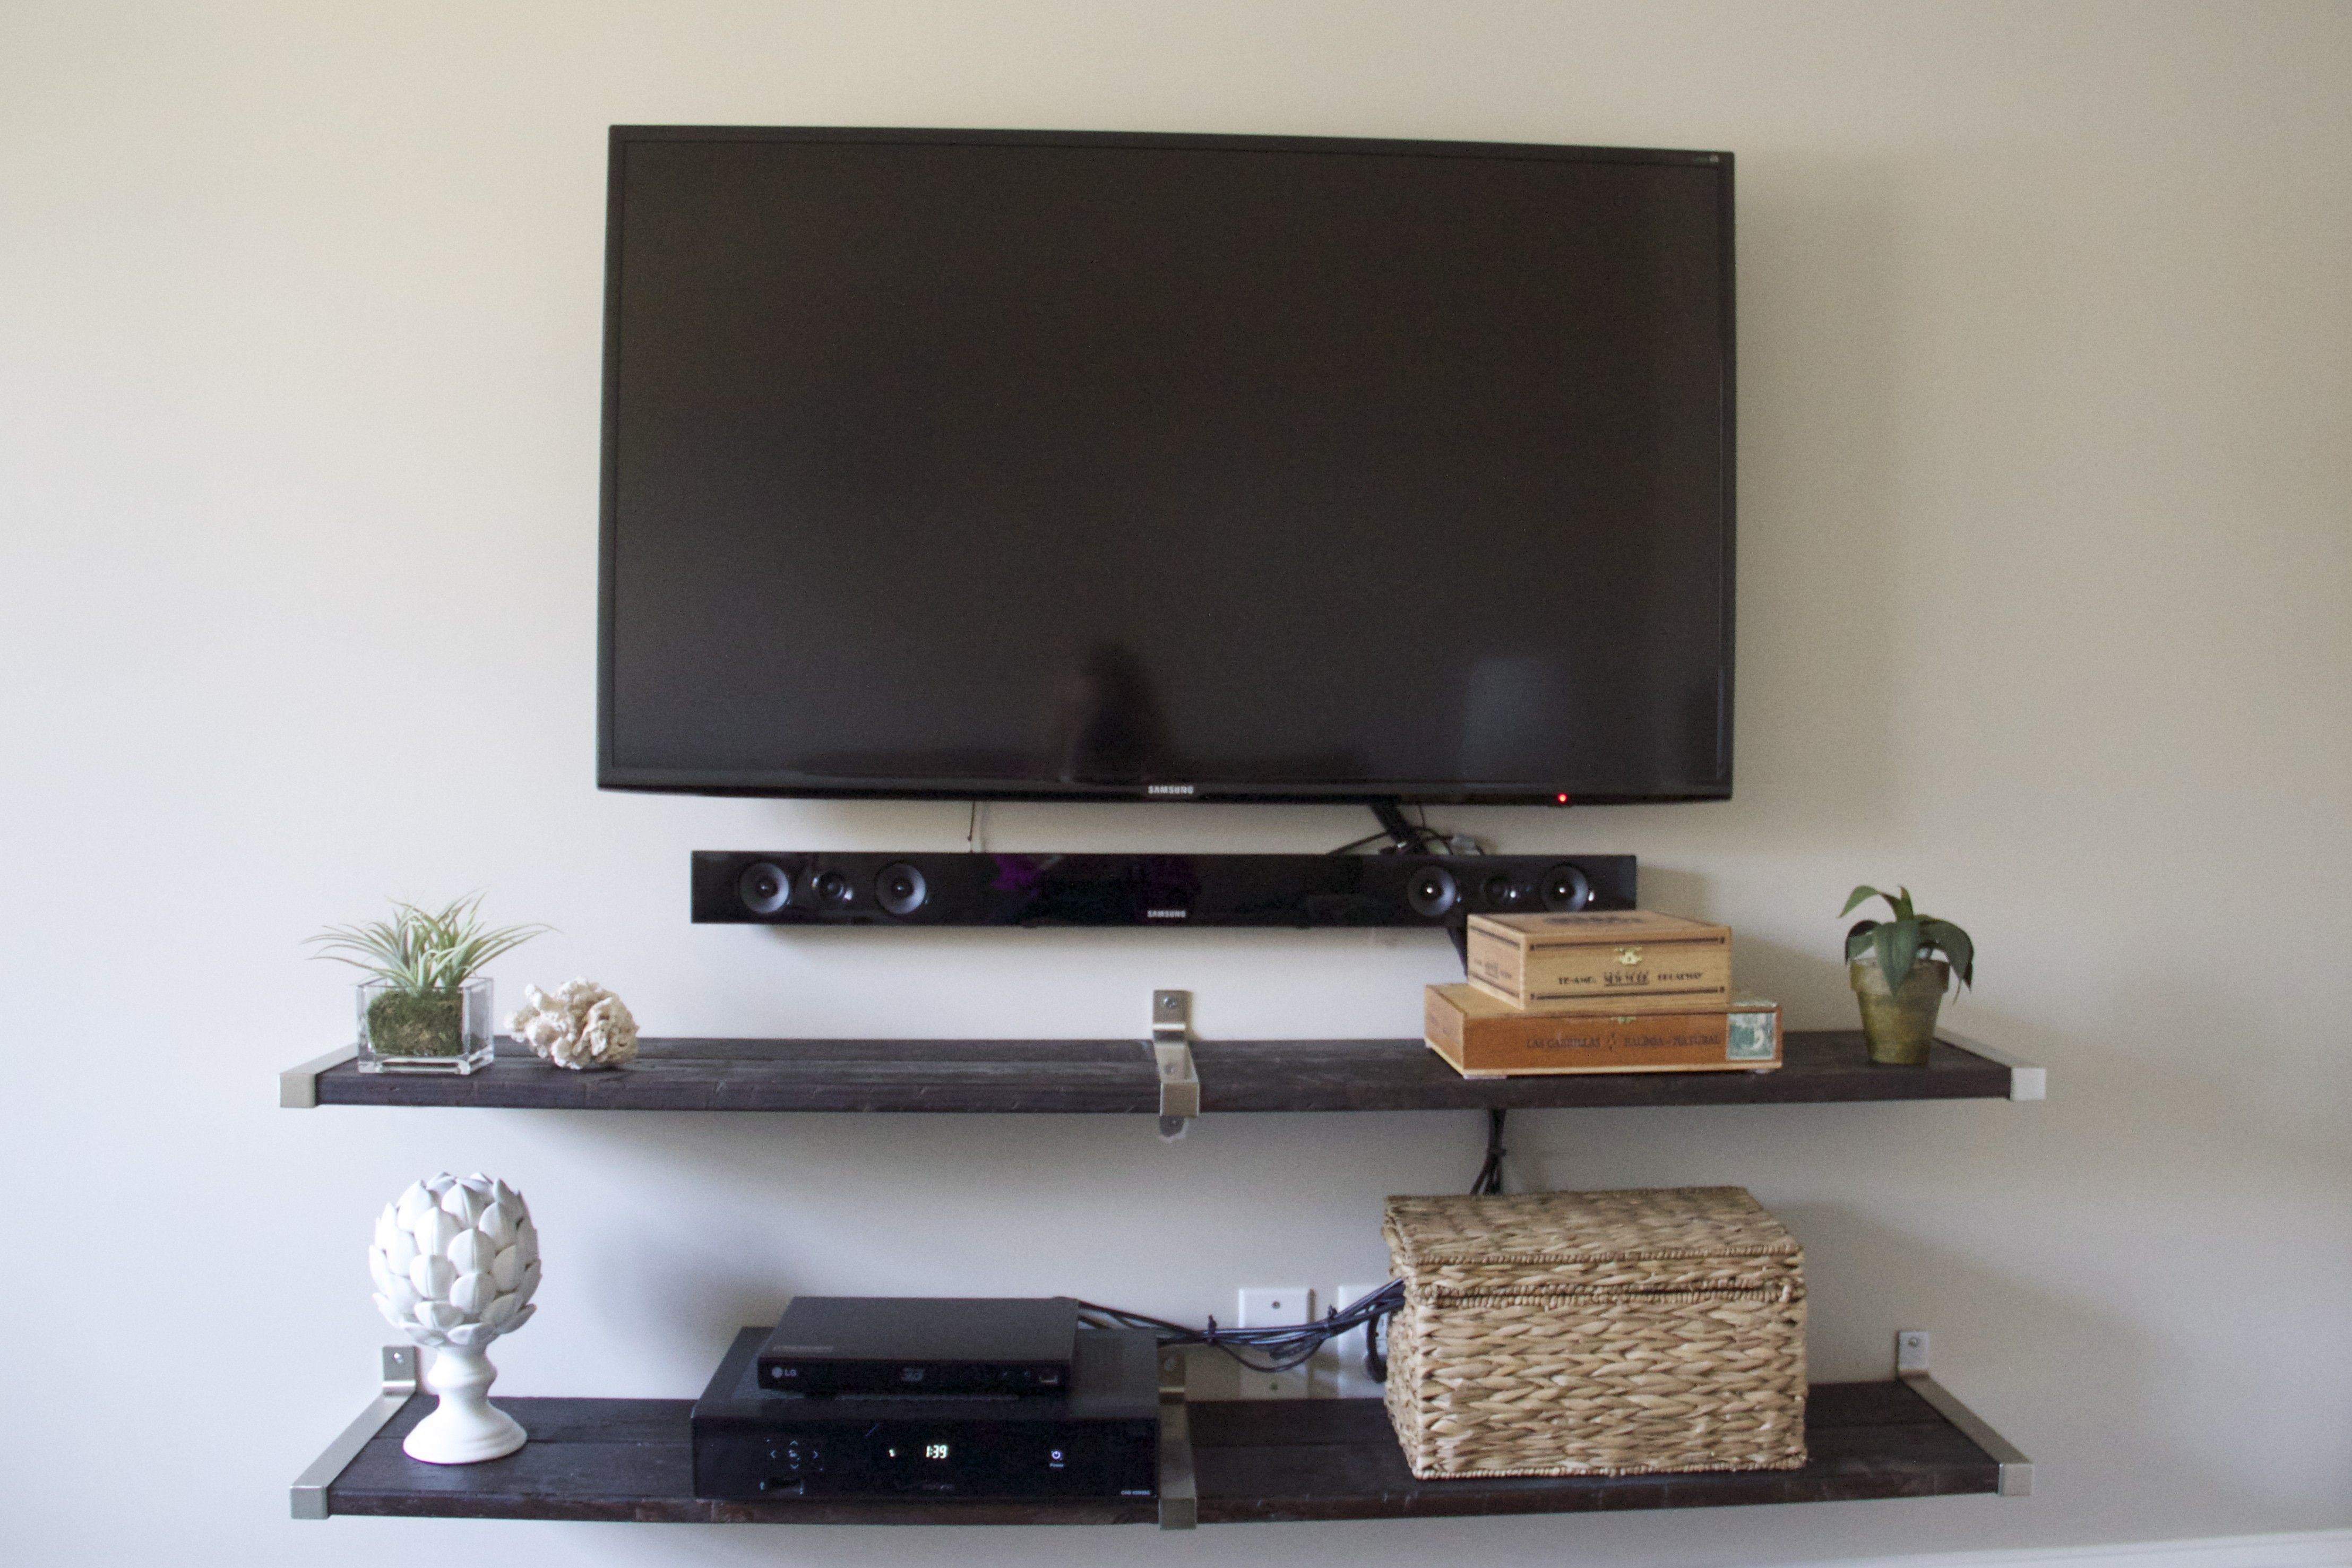 Shelf Ideas For Under Wall Mounted Tv Tv Wall Shelves Wall